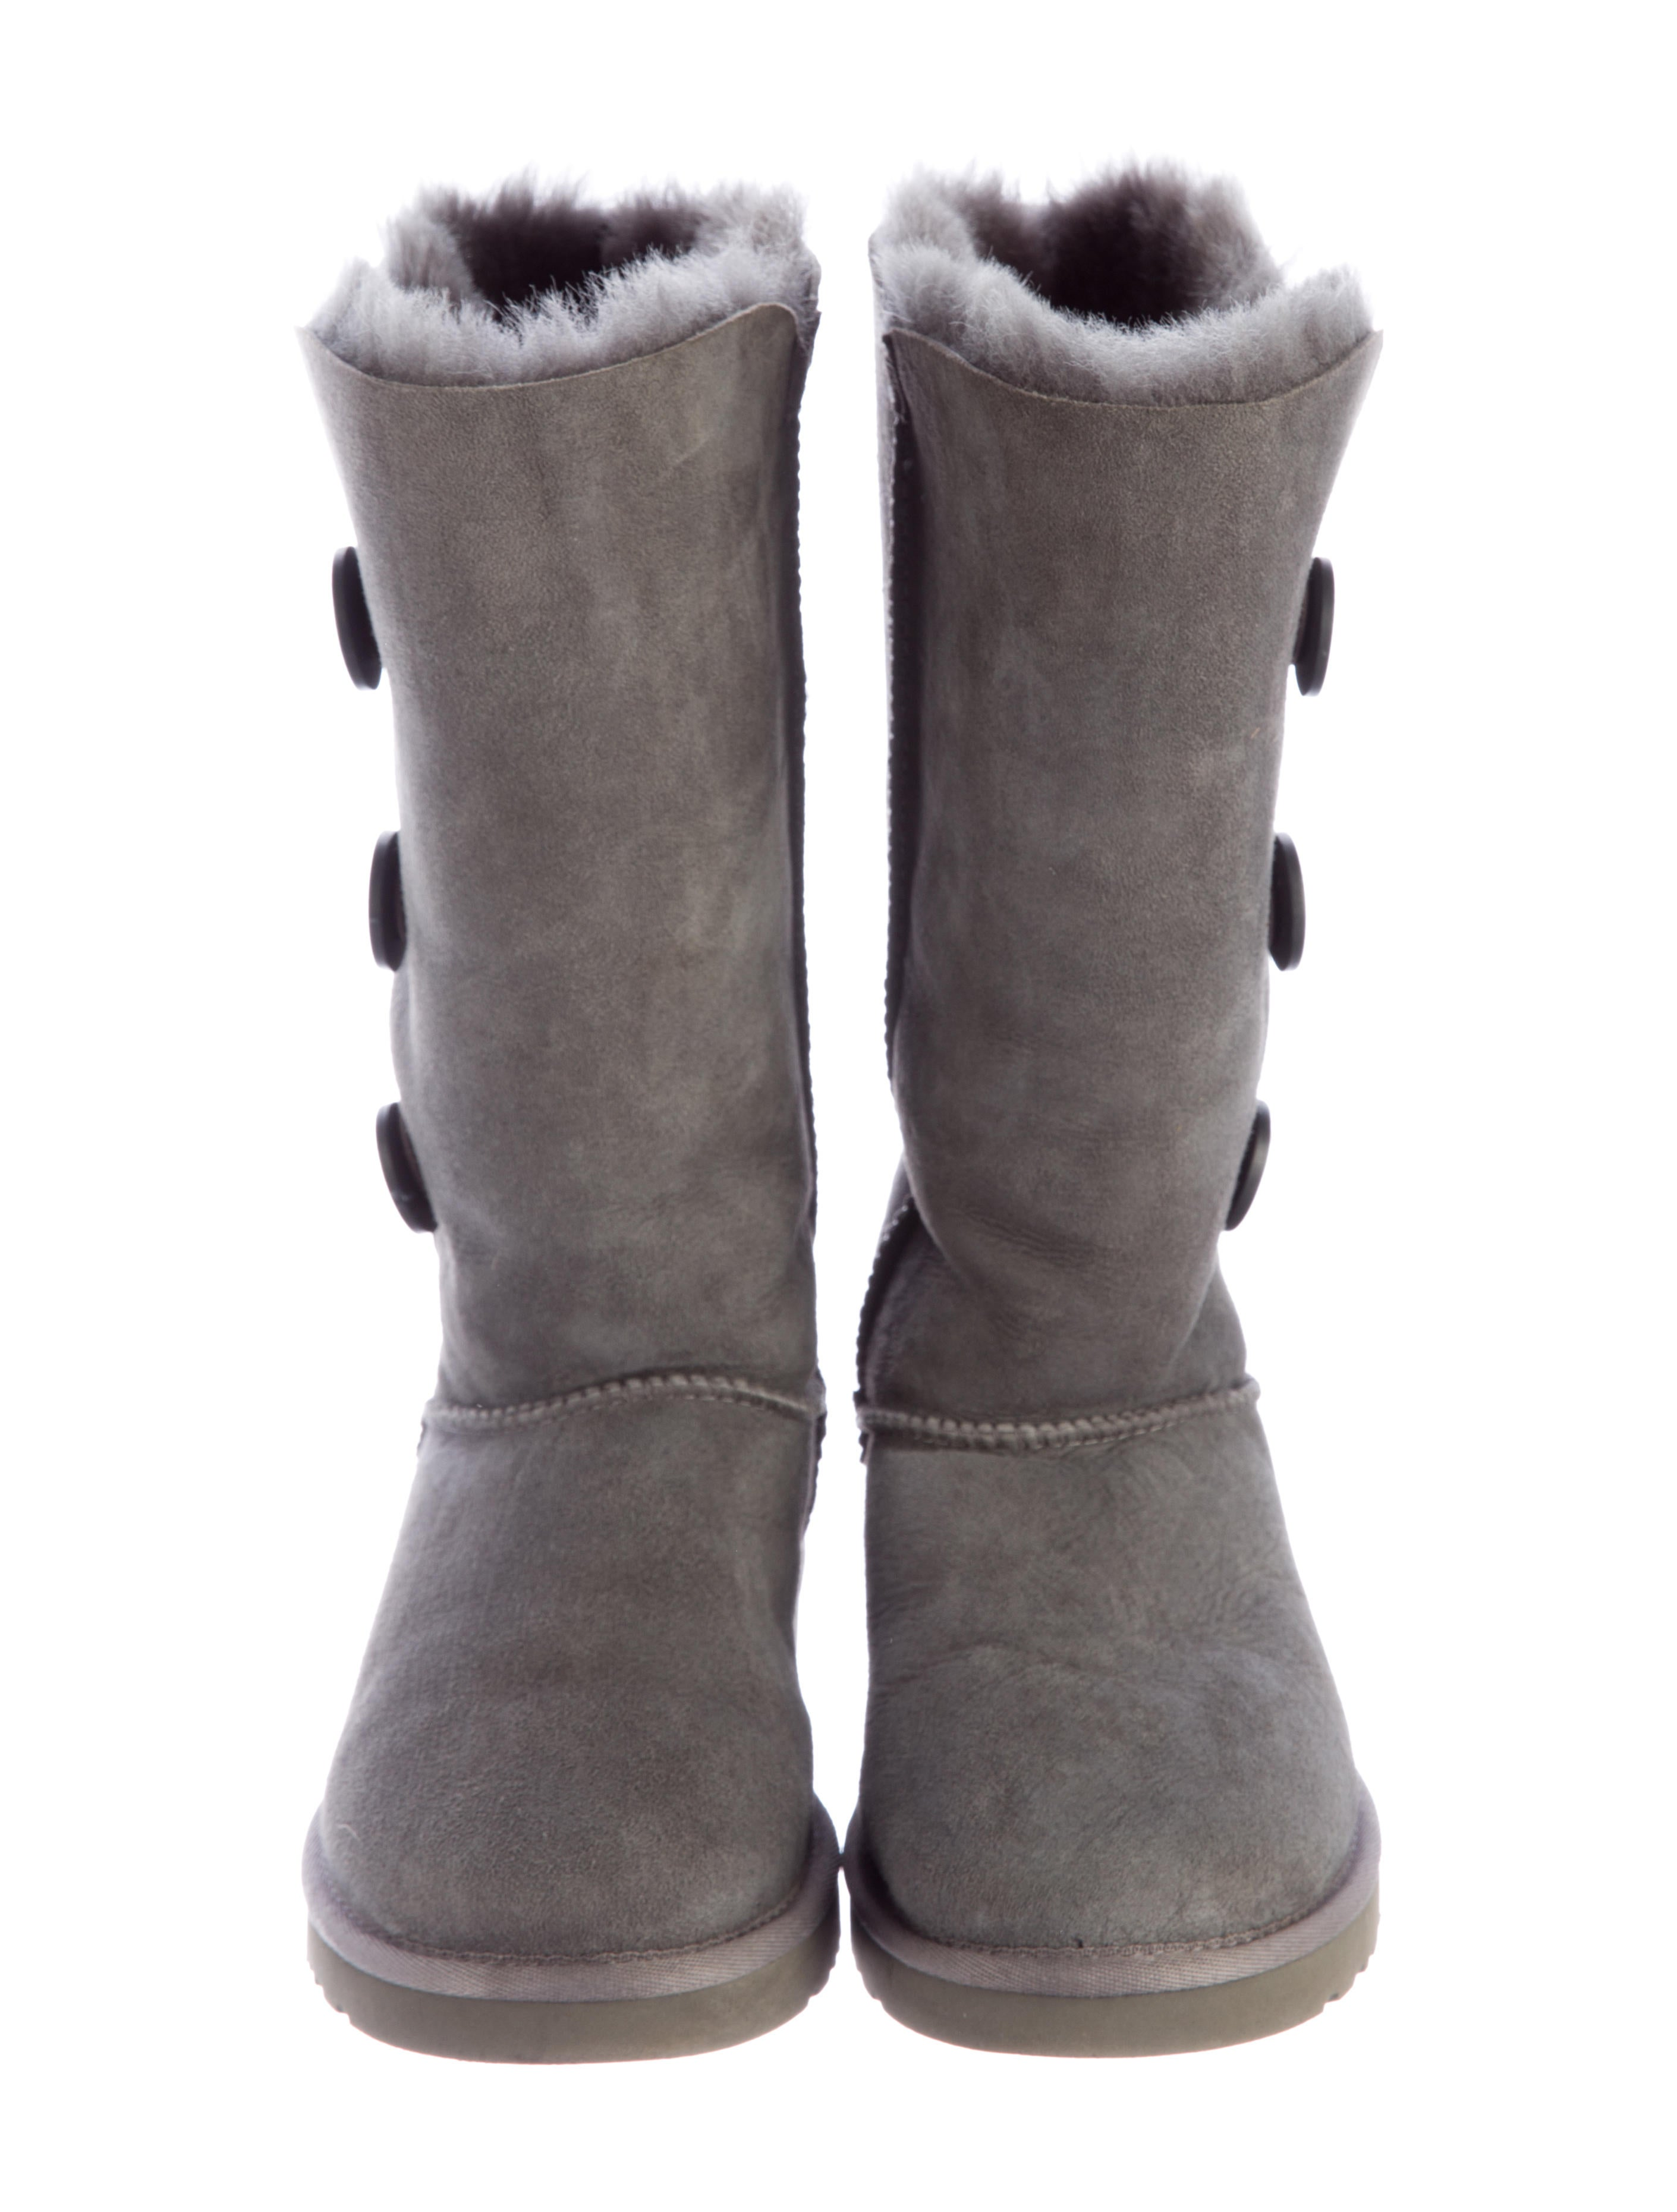 ugg bailey button triplet under $100